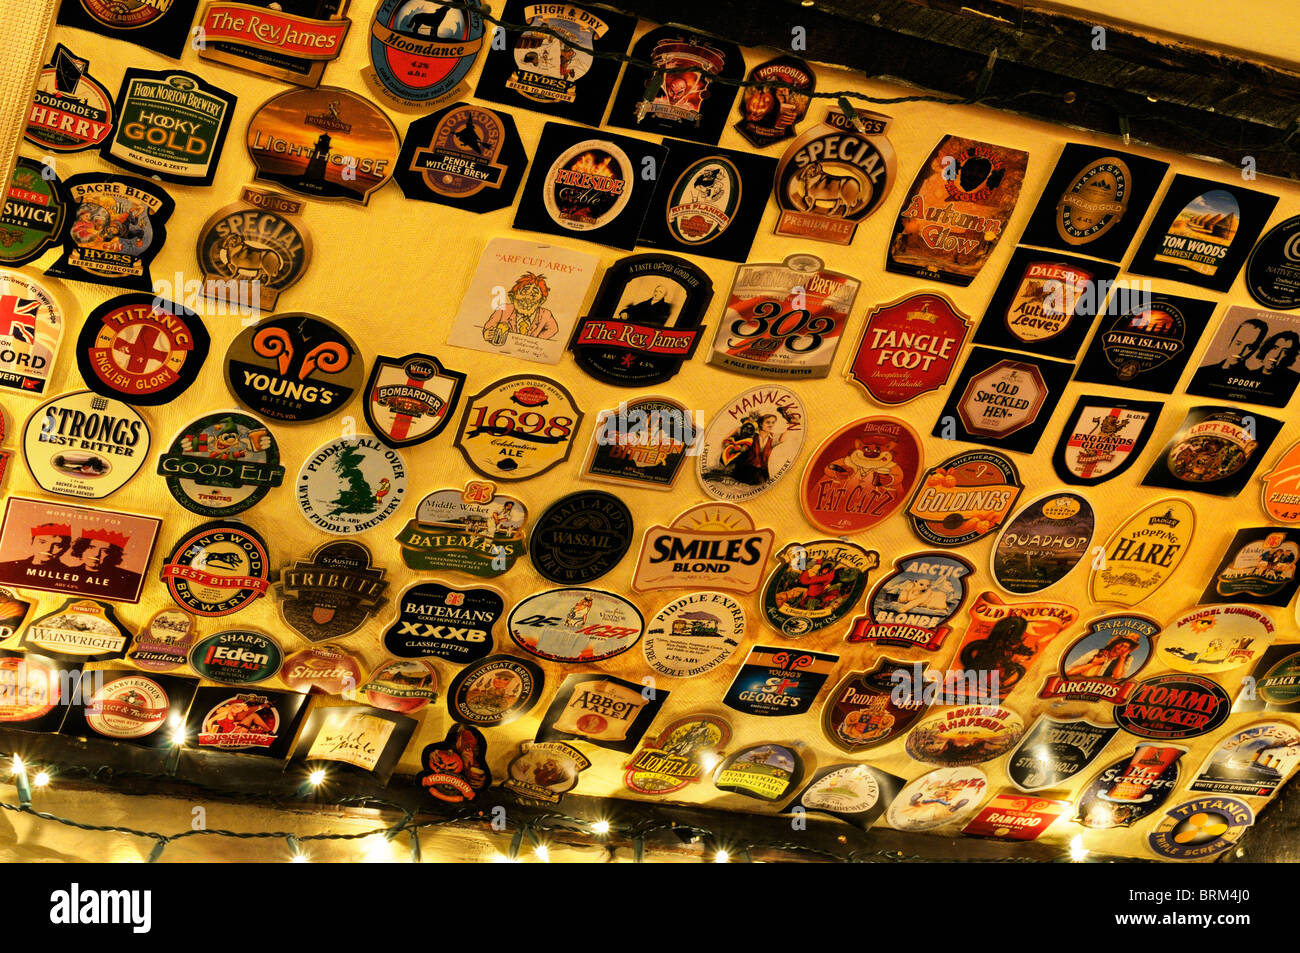 Display of beer mats in an English pub - Stock Image